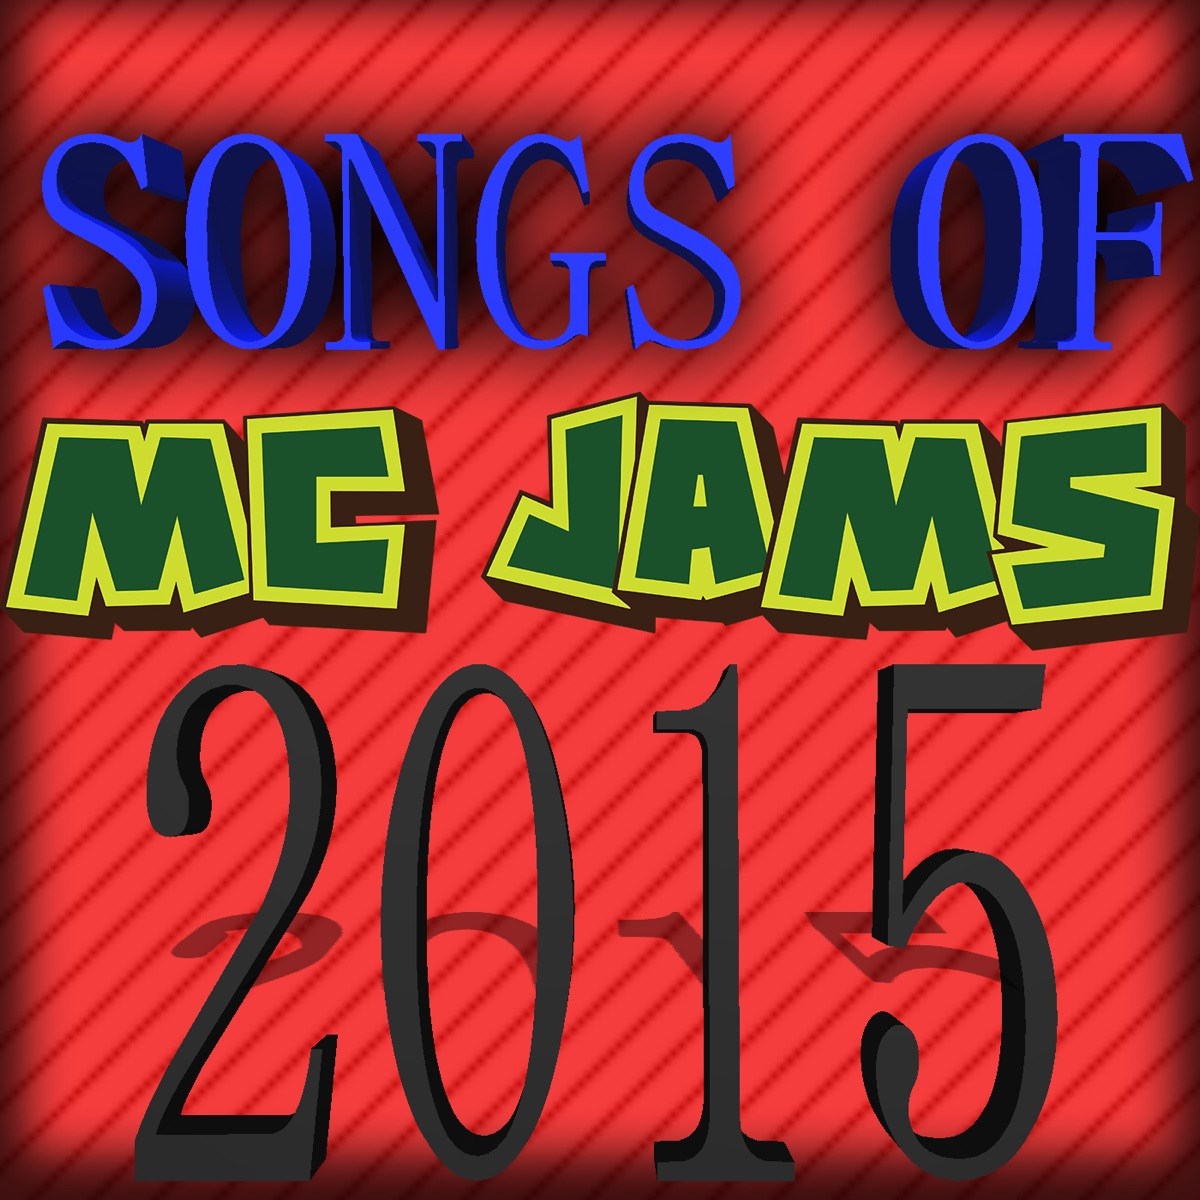 Songs Of 2015 Album Cover by MC Jams